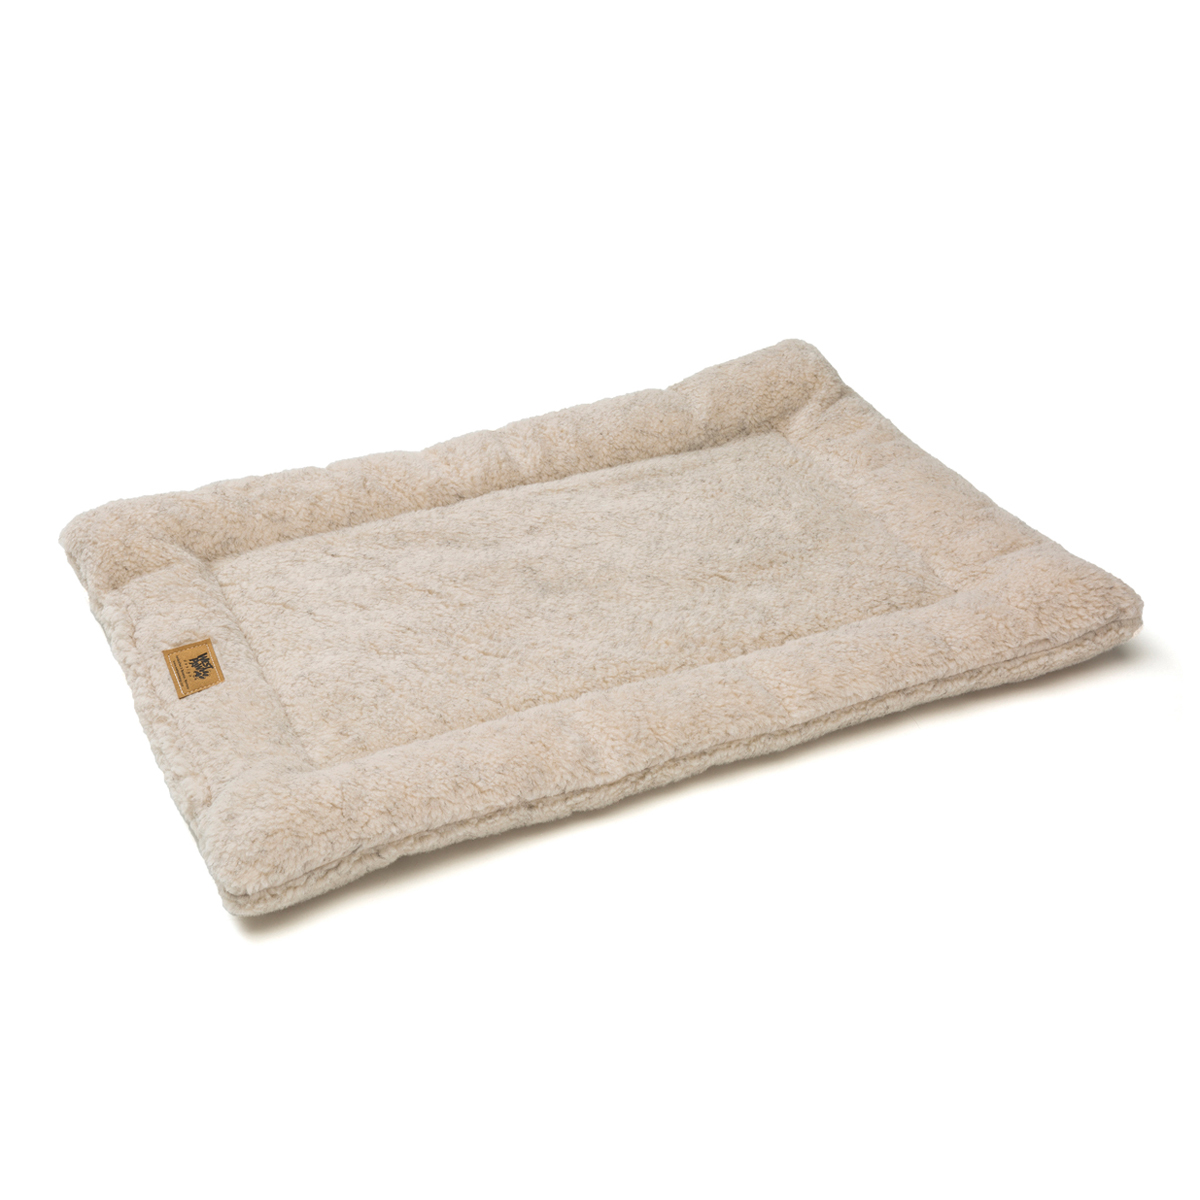 Montana Nap Pet Bed by West Paw Design - Oatmeal